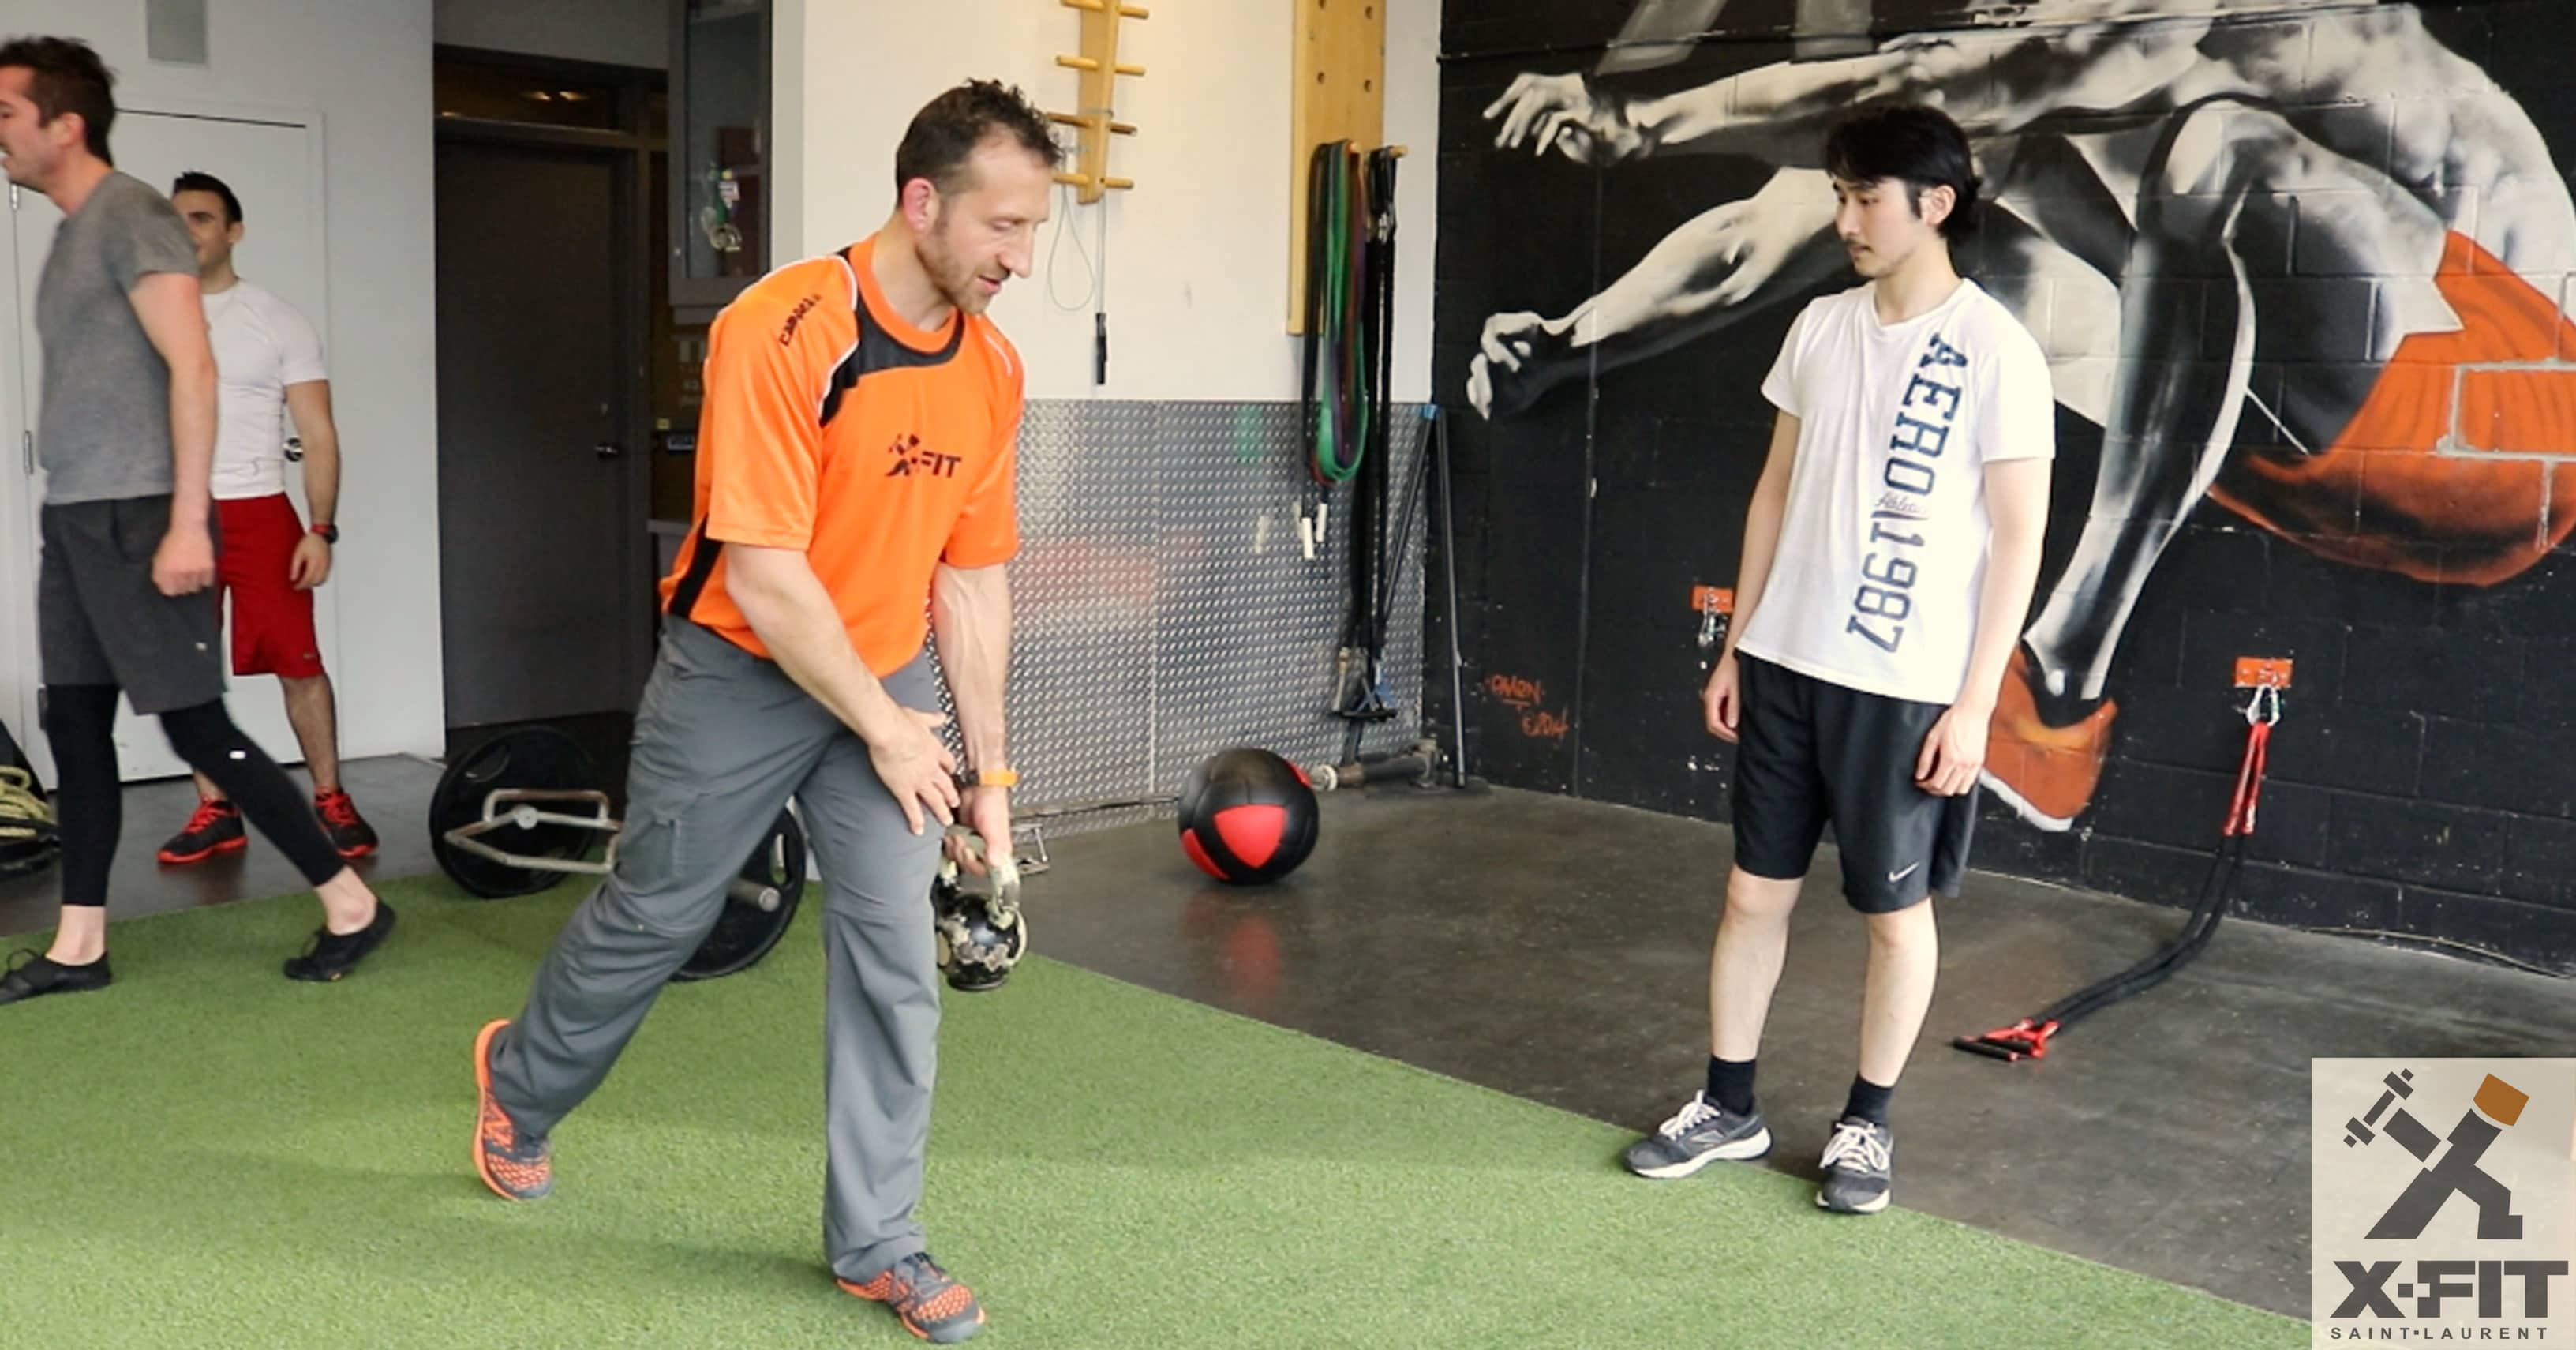 Derek Della Rocca demonstrating kettle bell exercice to a trainee in his gym